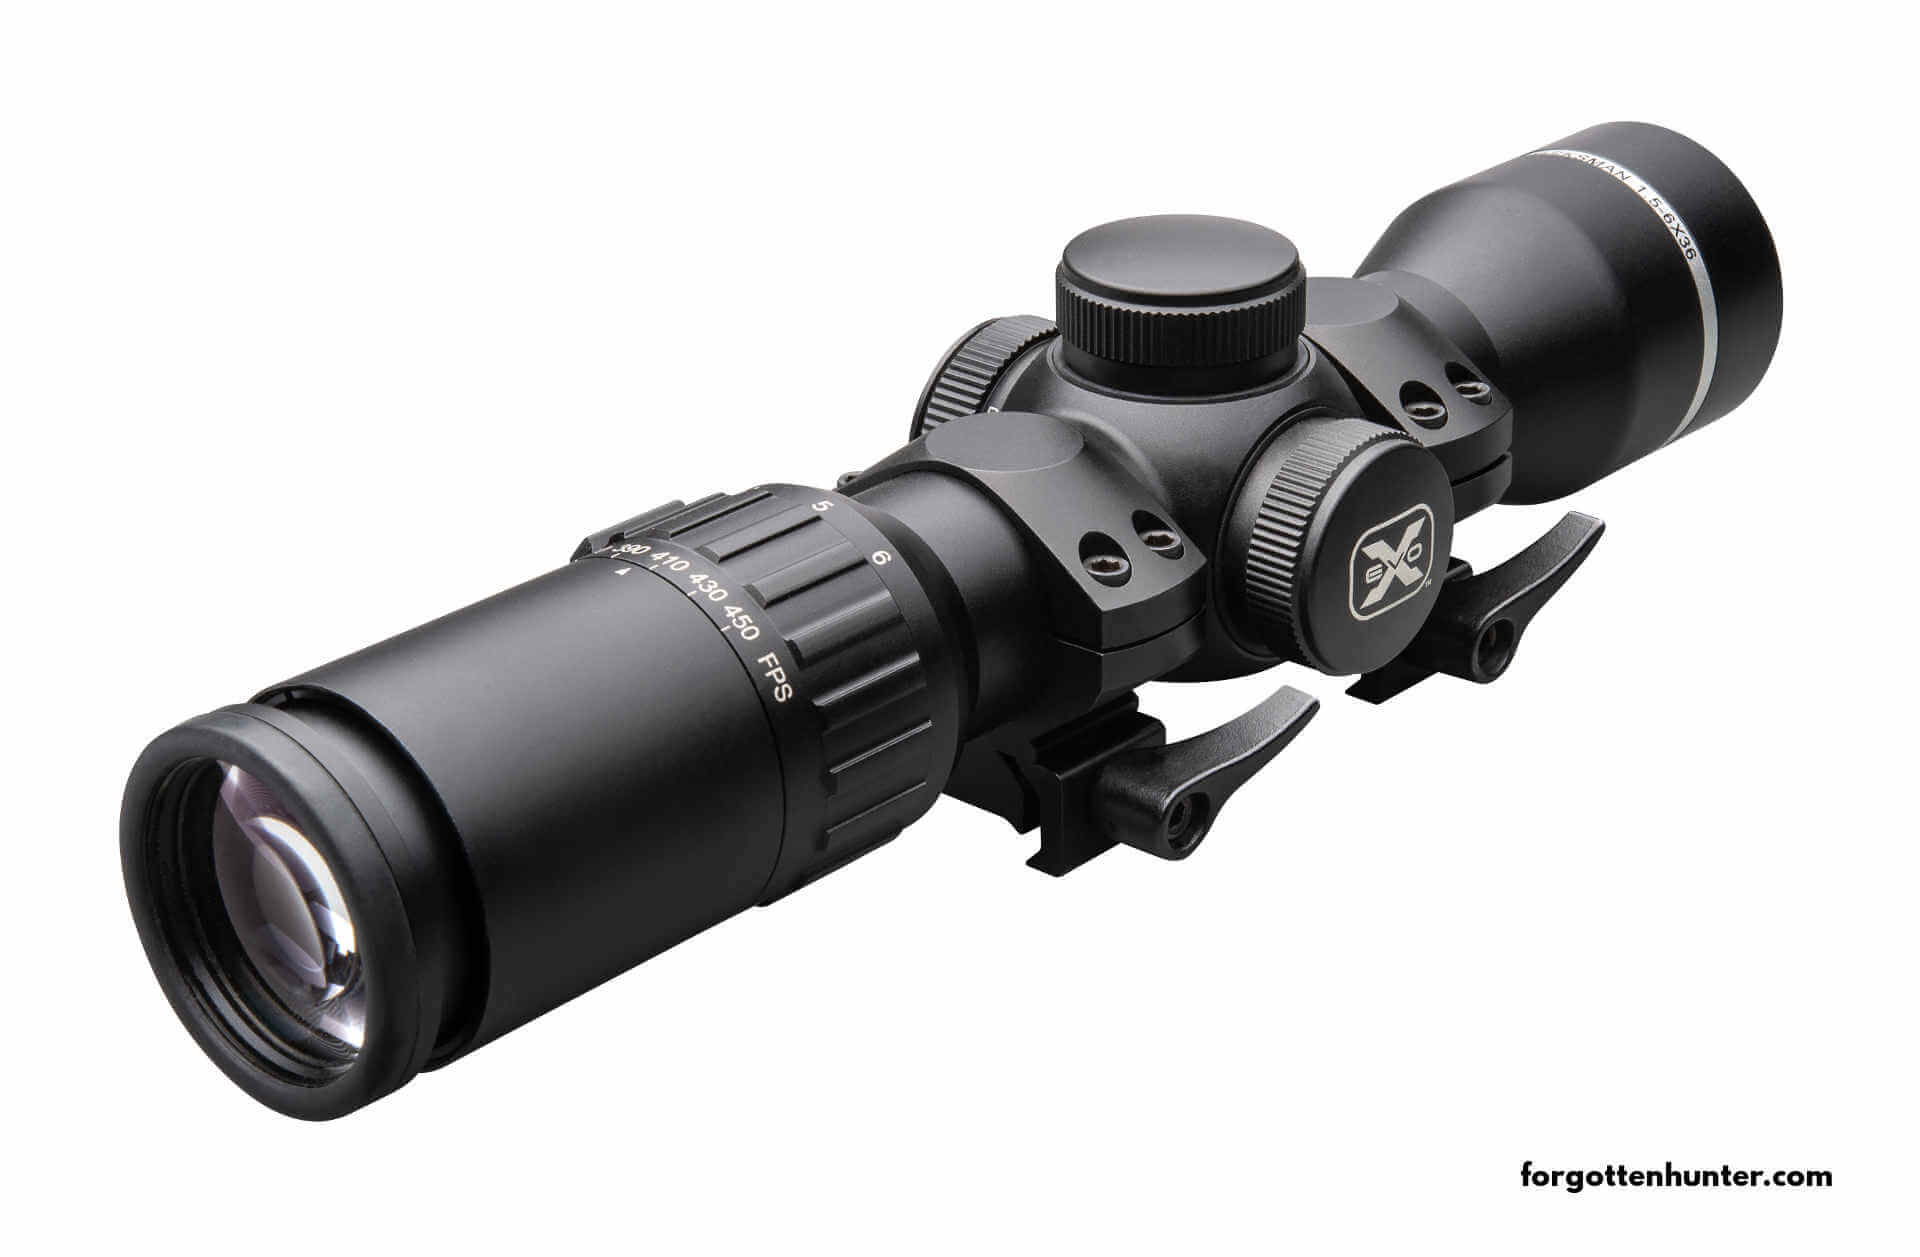 The EVO-X long range precision scope that comes with the Nitro XTR.